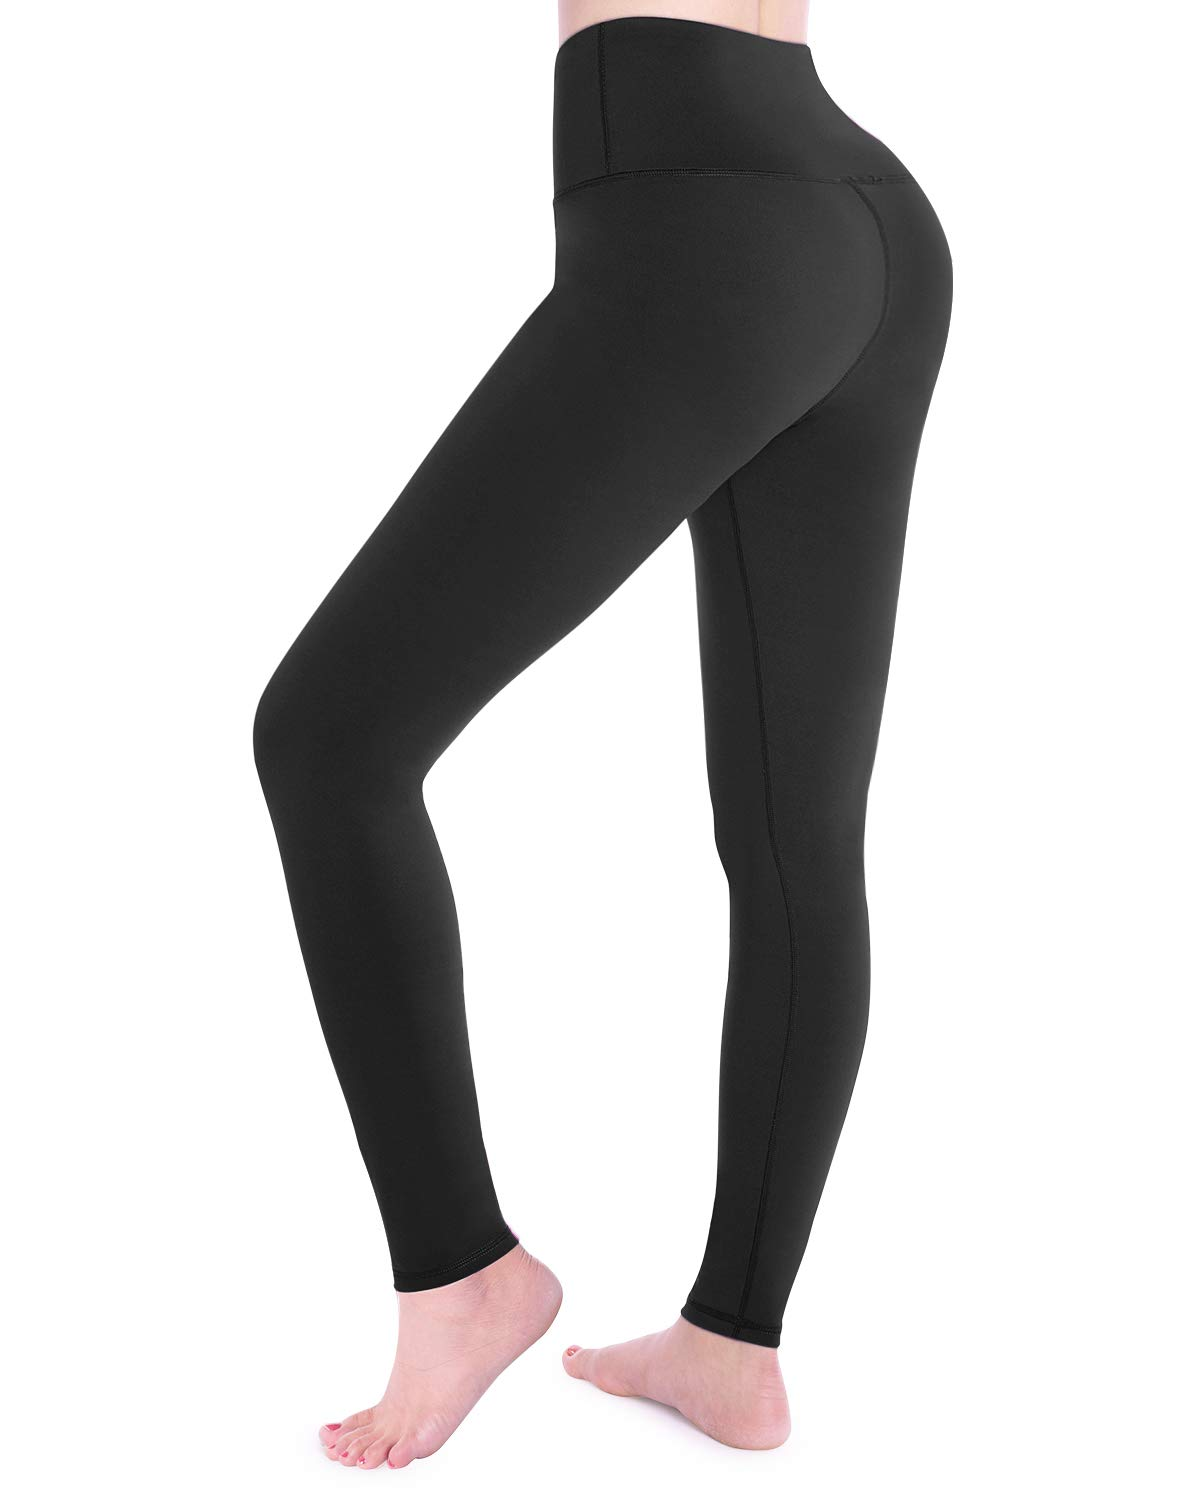 STYLEWORD Women's Leggings High Waist Yoga Pants Tummy Control Workout Running Elastic Tights(Black,S)